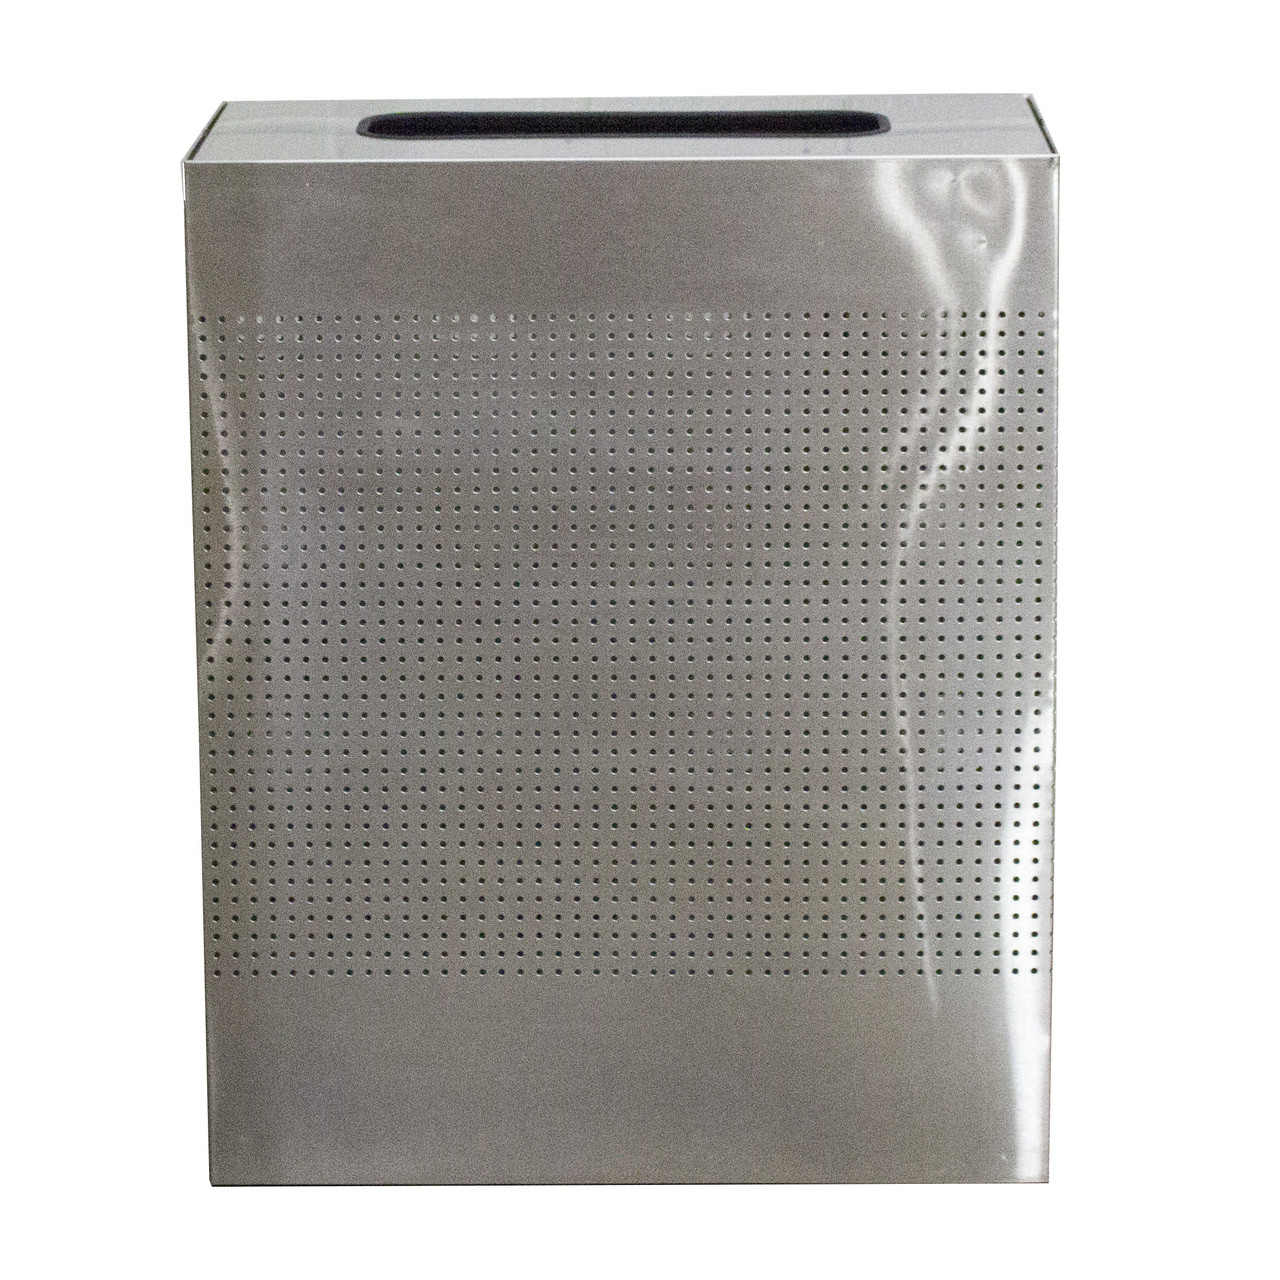 40 Gal. The Celestial CLRC40-SS Mesh Rectangular Trash Can Stainless Steel